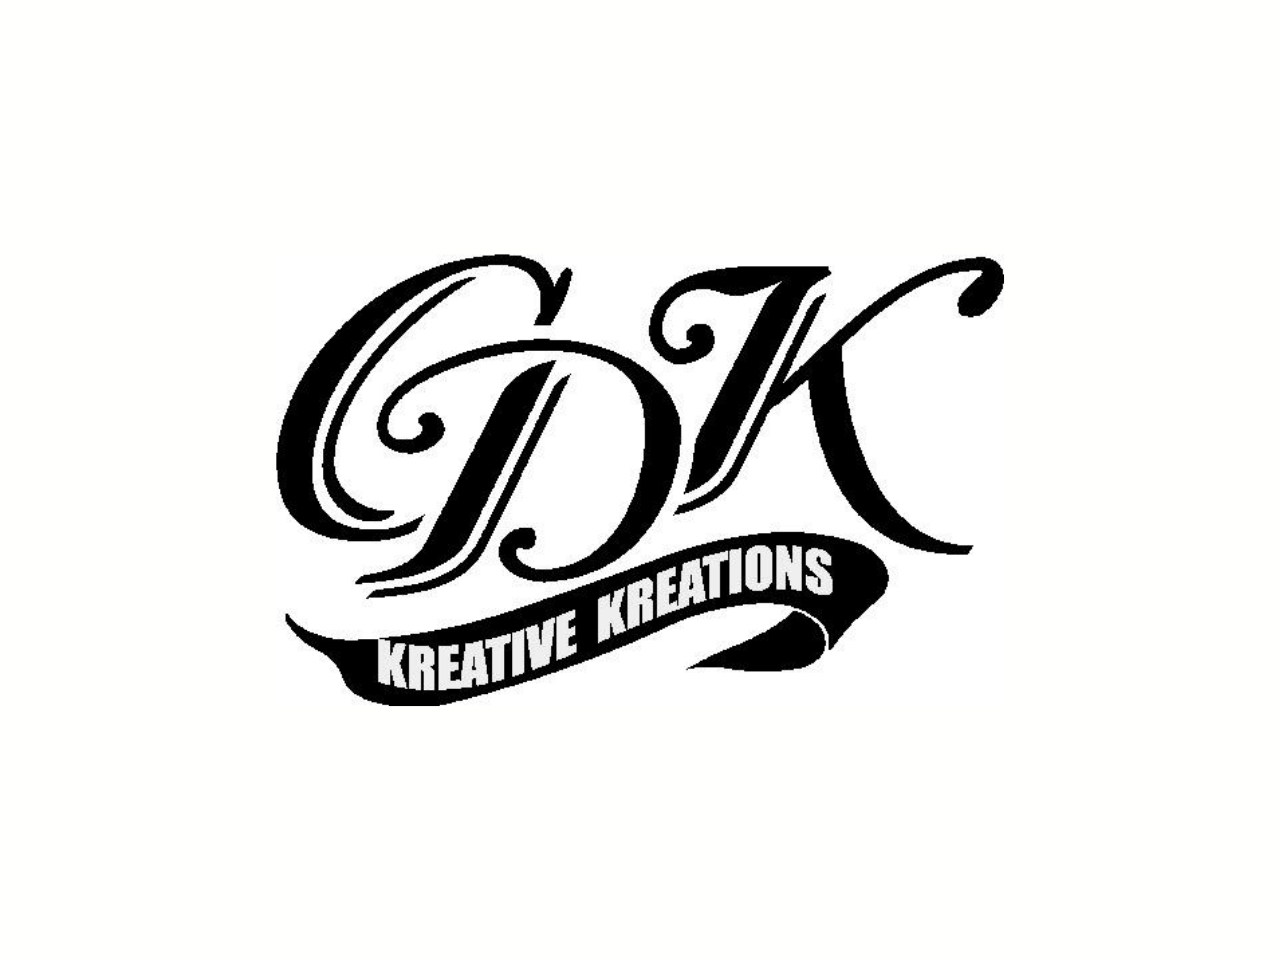 CDK Kreative Kreations